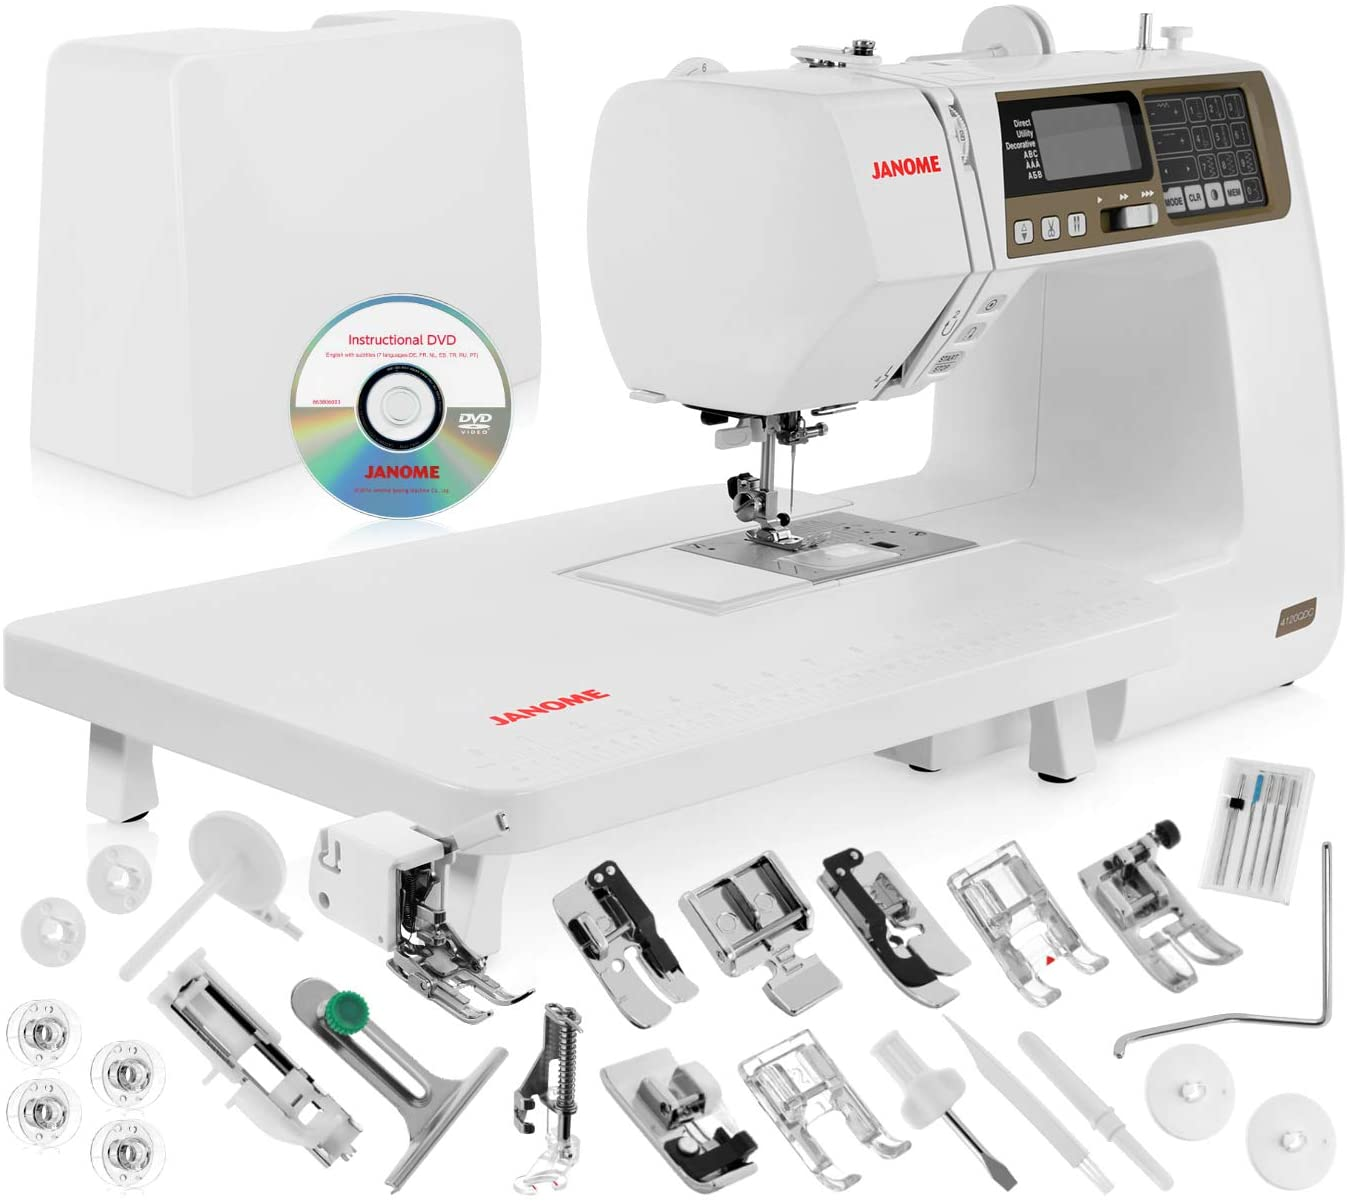 Janome 4120QDC Computerized Sewing Machine - Best Sewing Machine for Quilting and Embroidery